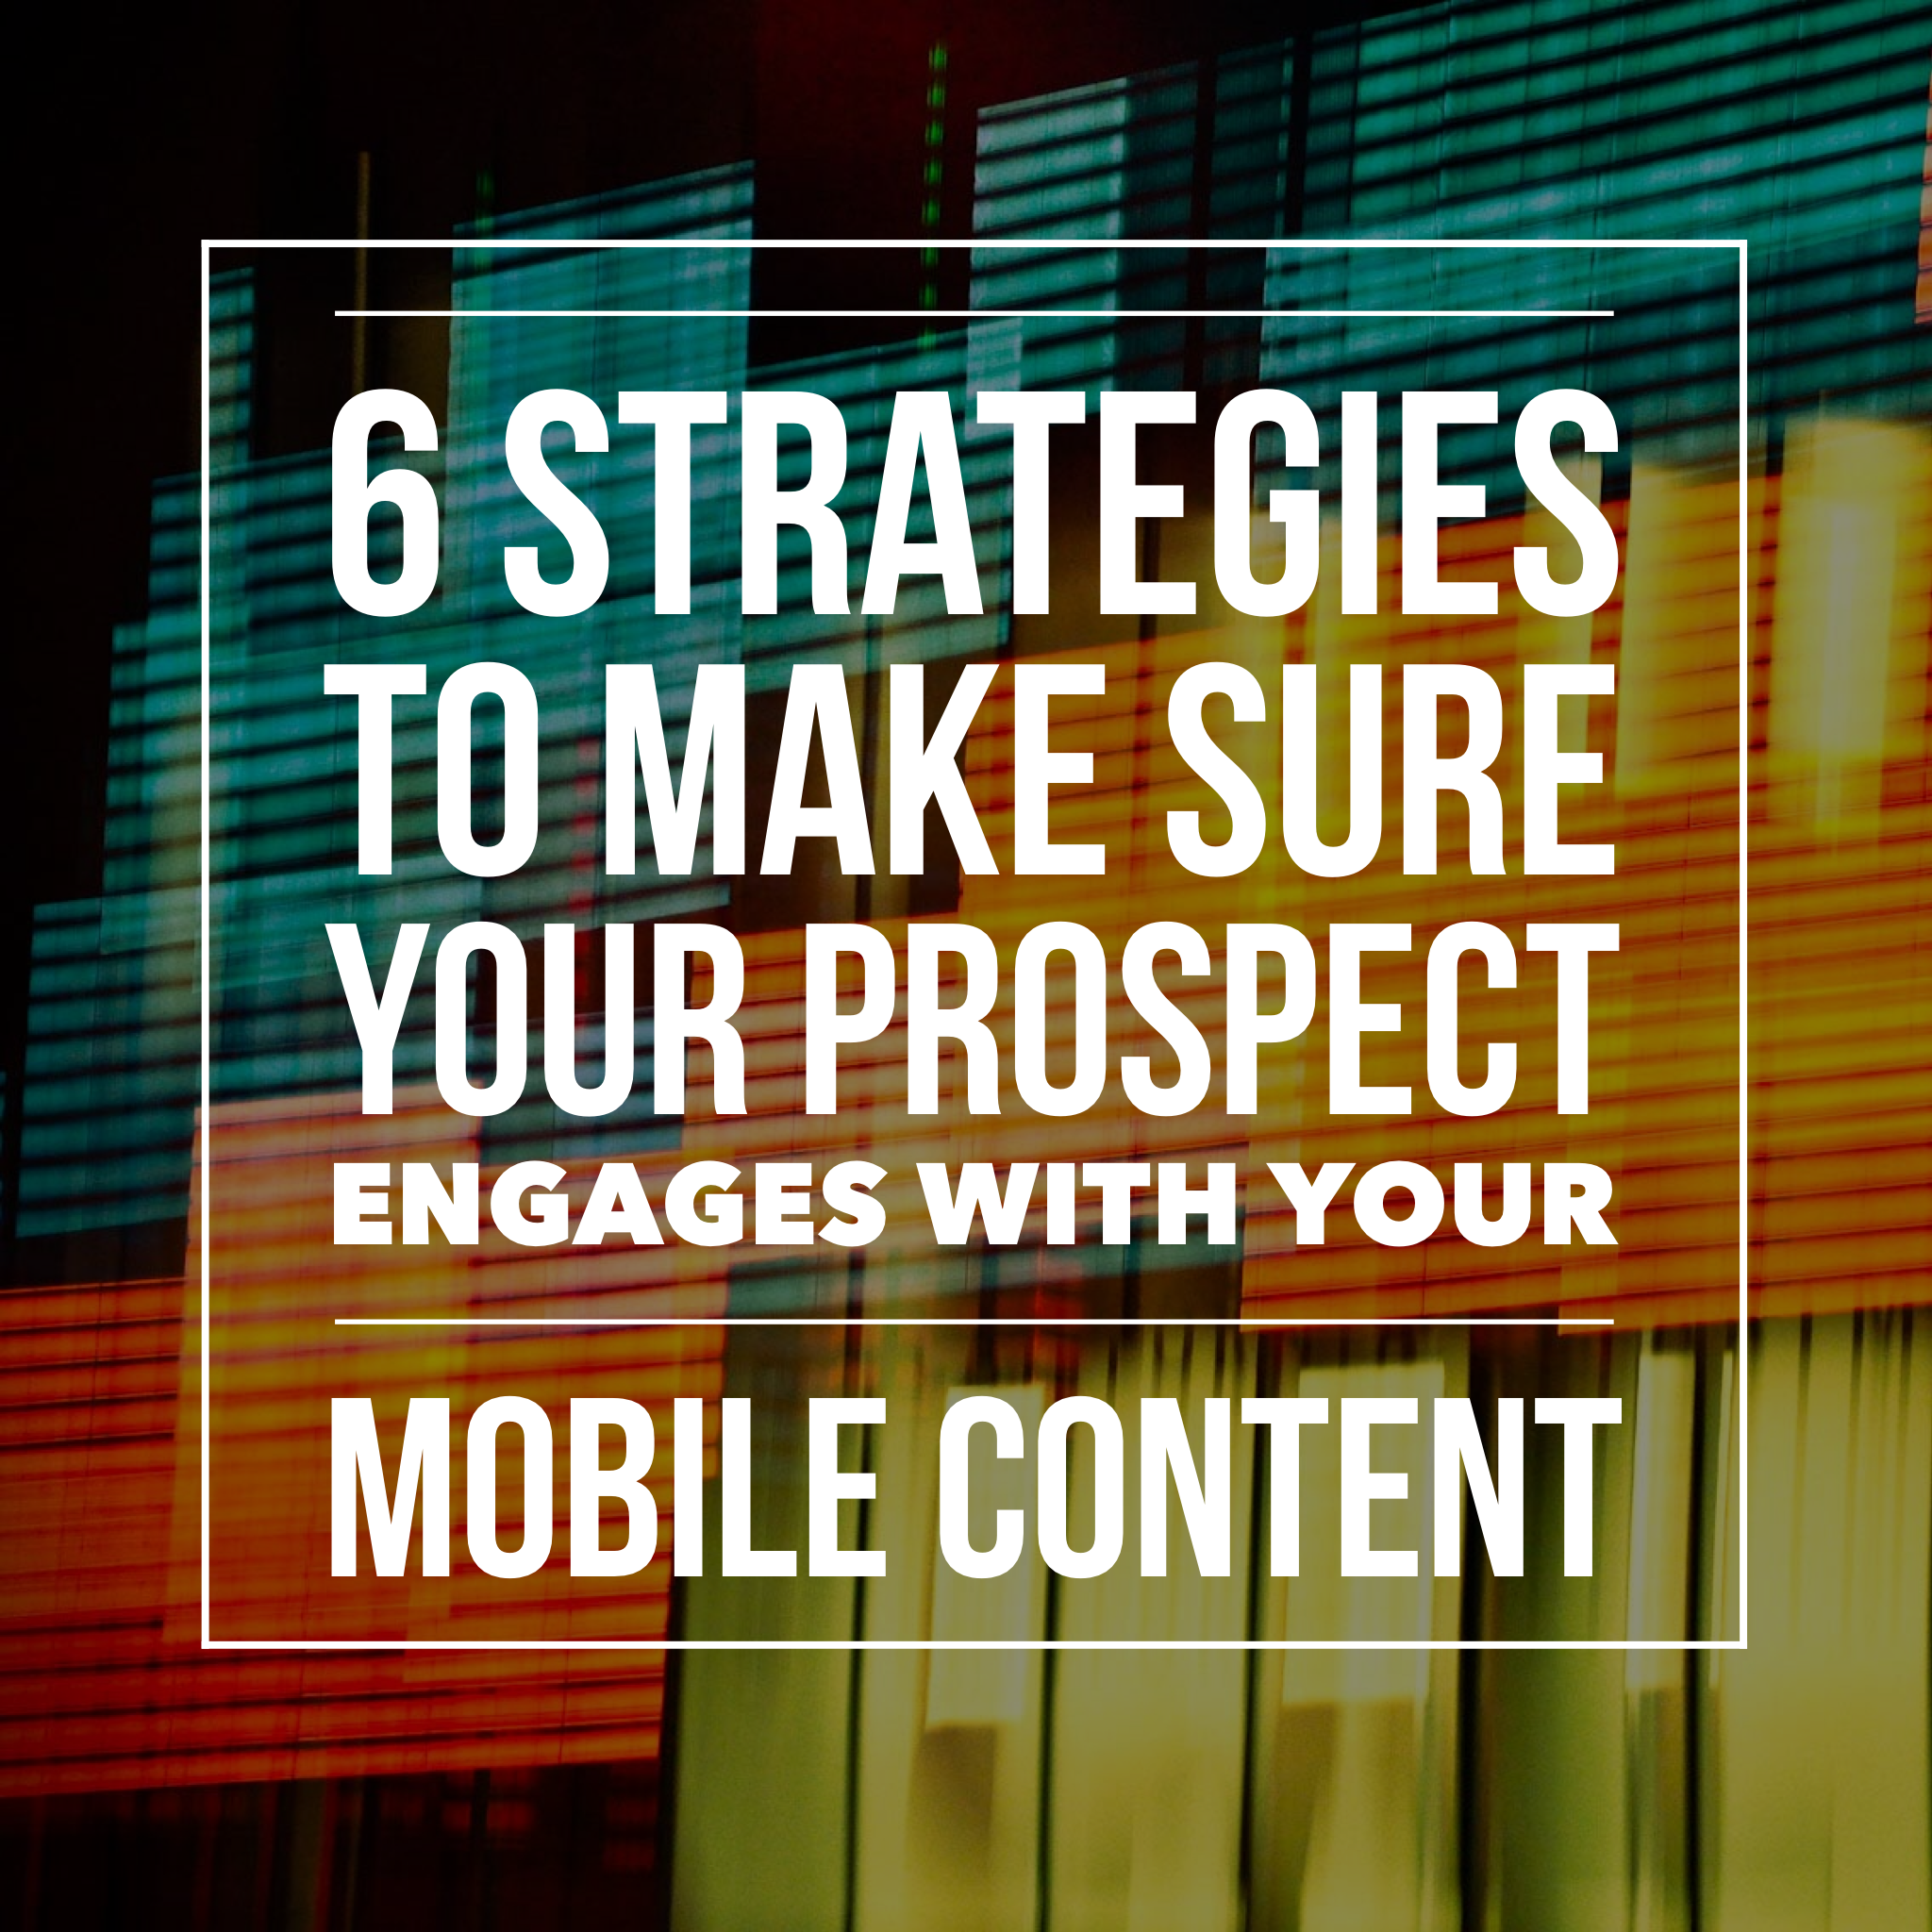 These 6 Strategies Will Make Sure Your Prospect Engages With Your Mobile Content